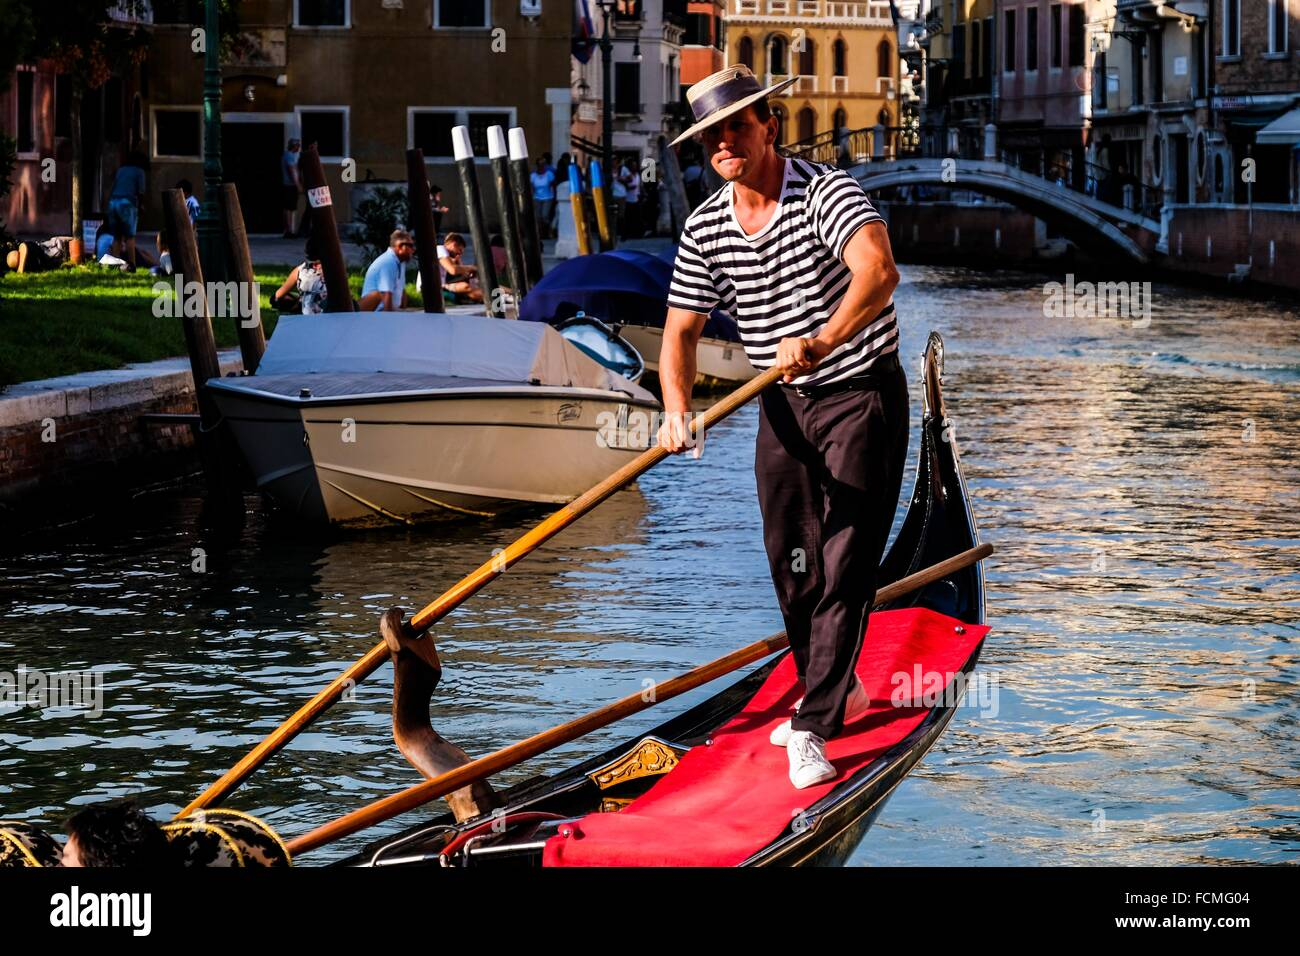 60928a1c47c Gondolier In Traditional Costume Stock Photos   Gondolier In ...